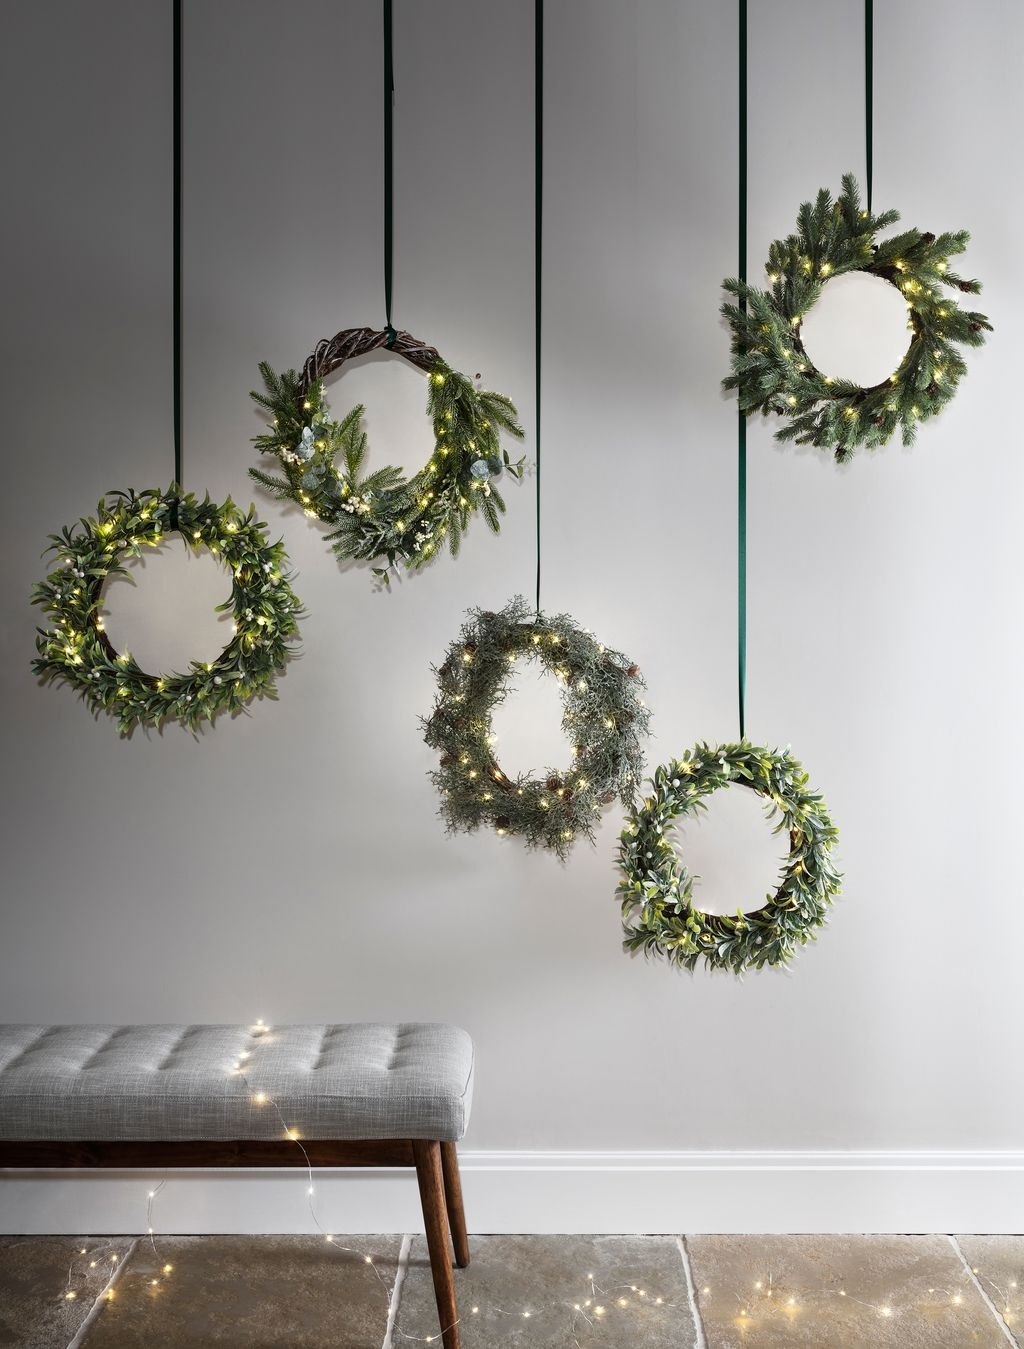 Gergerous Indoor Decoration Ideas With Christmas Lights42